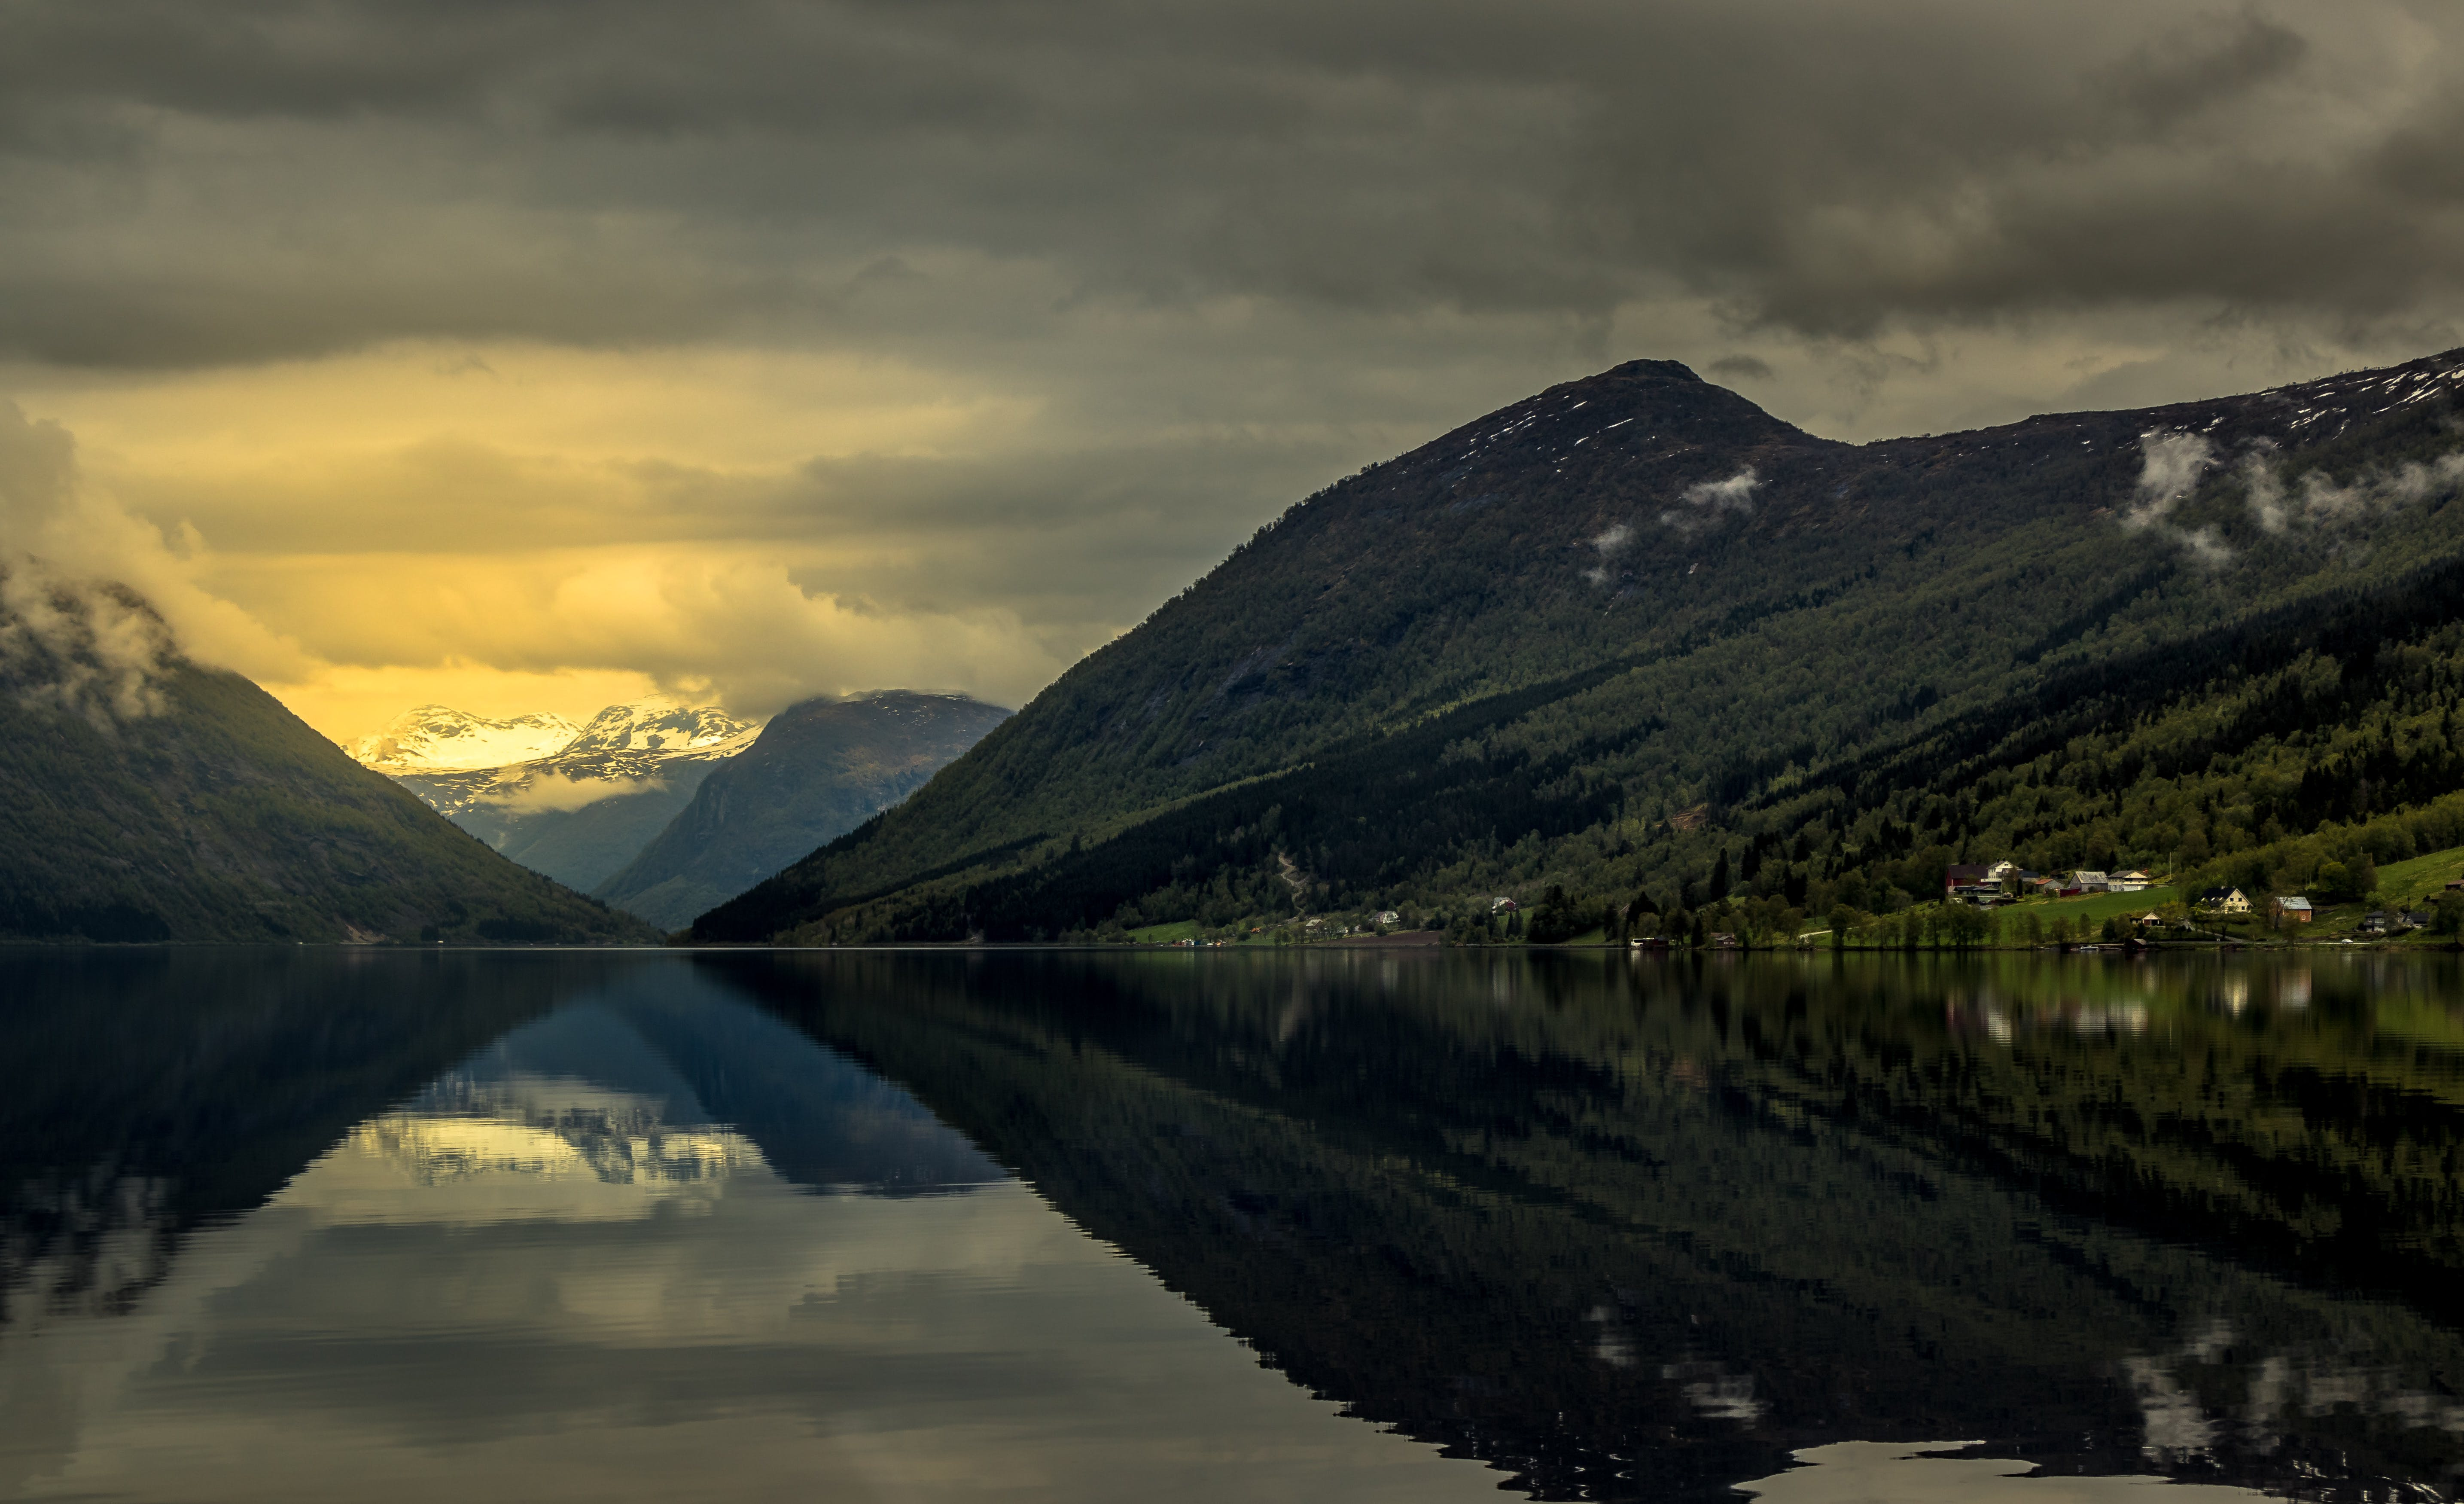 Reflection Photography of Mountain and Sky during Golden Hour